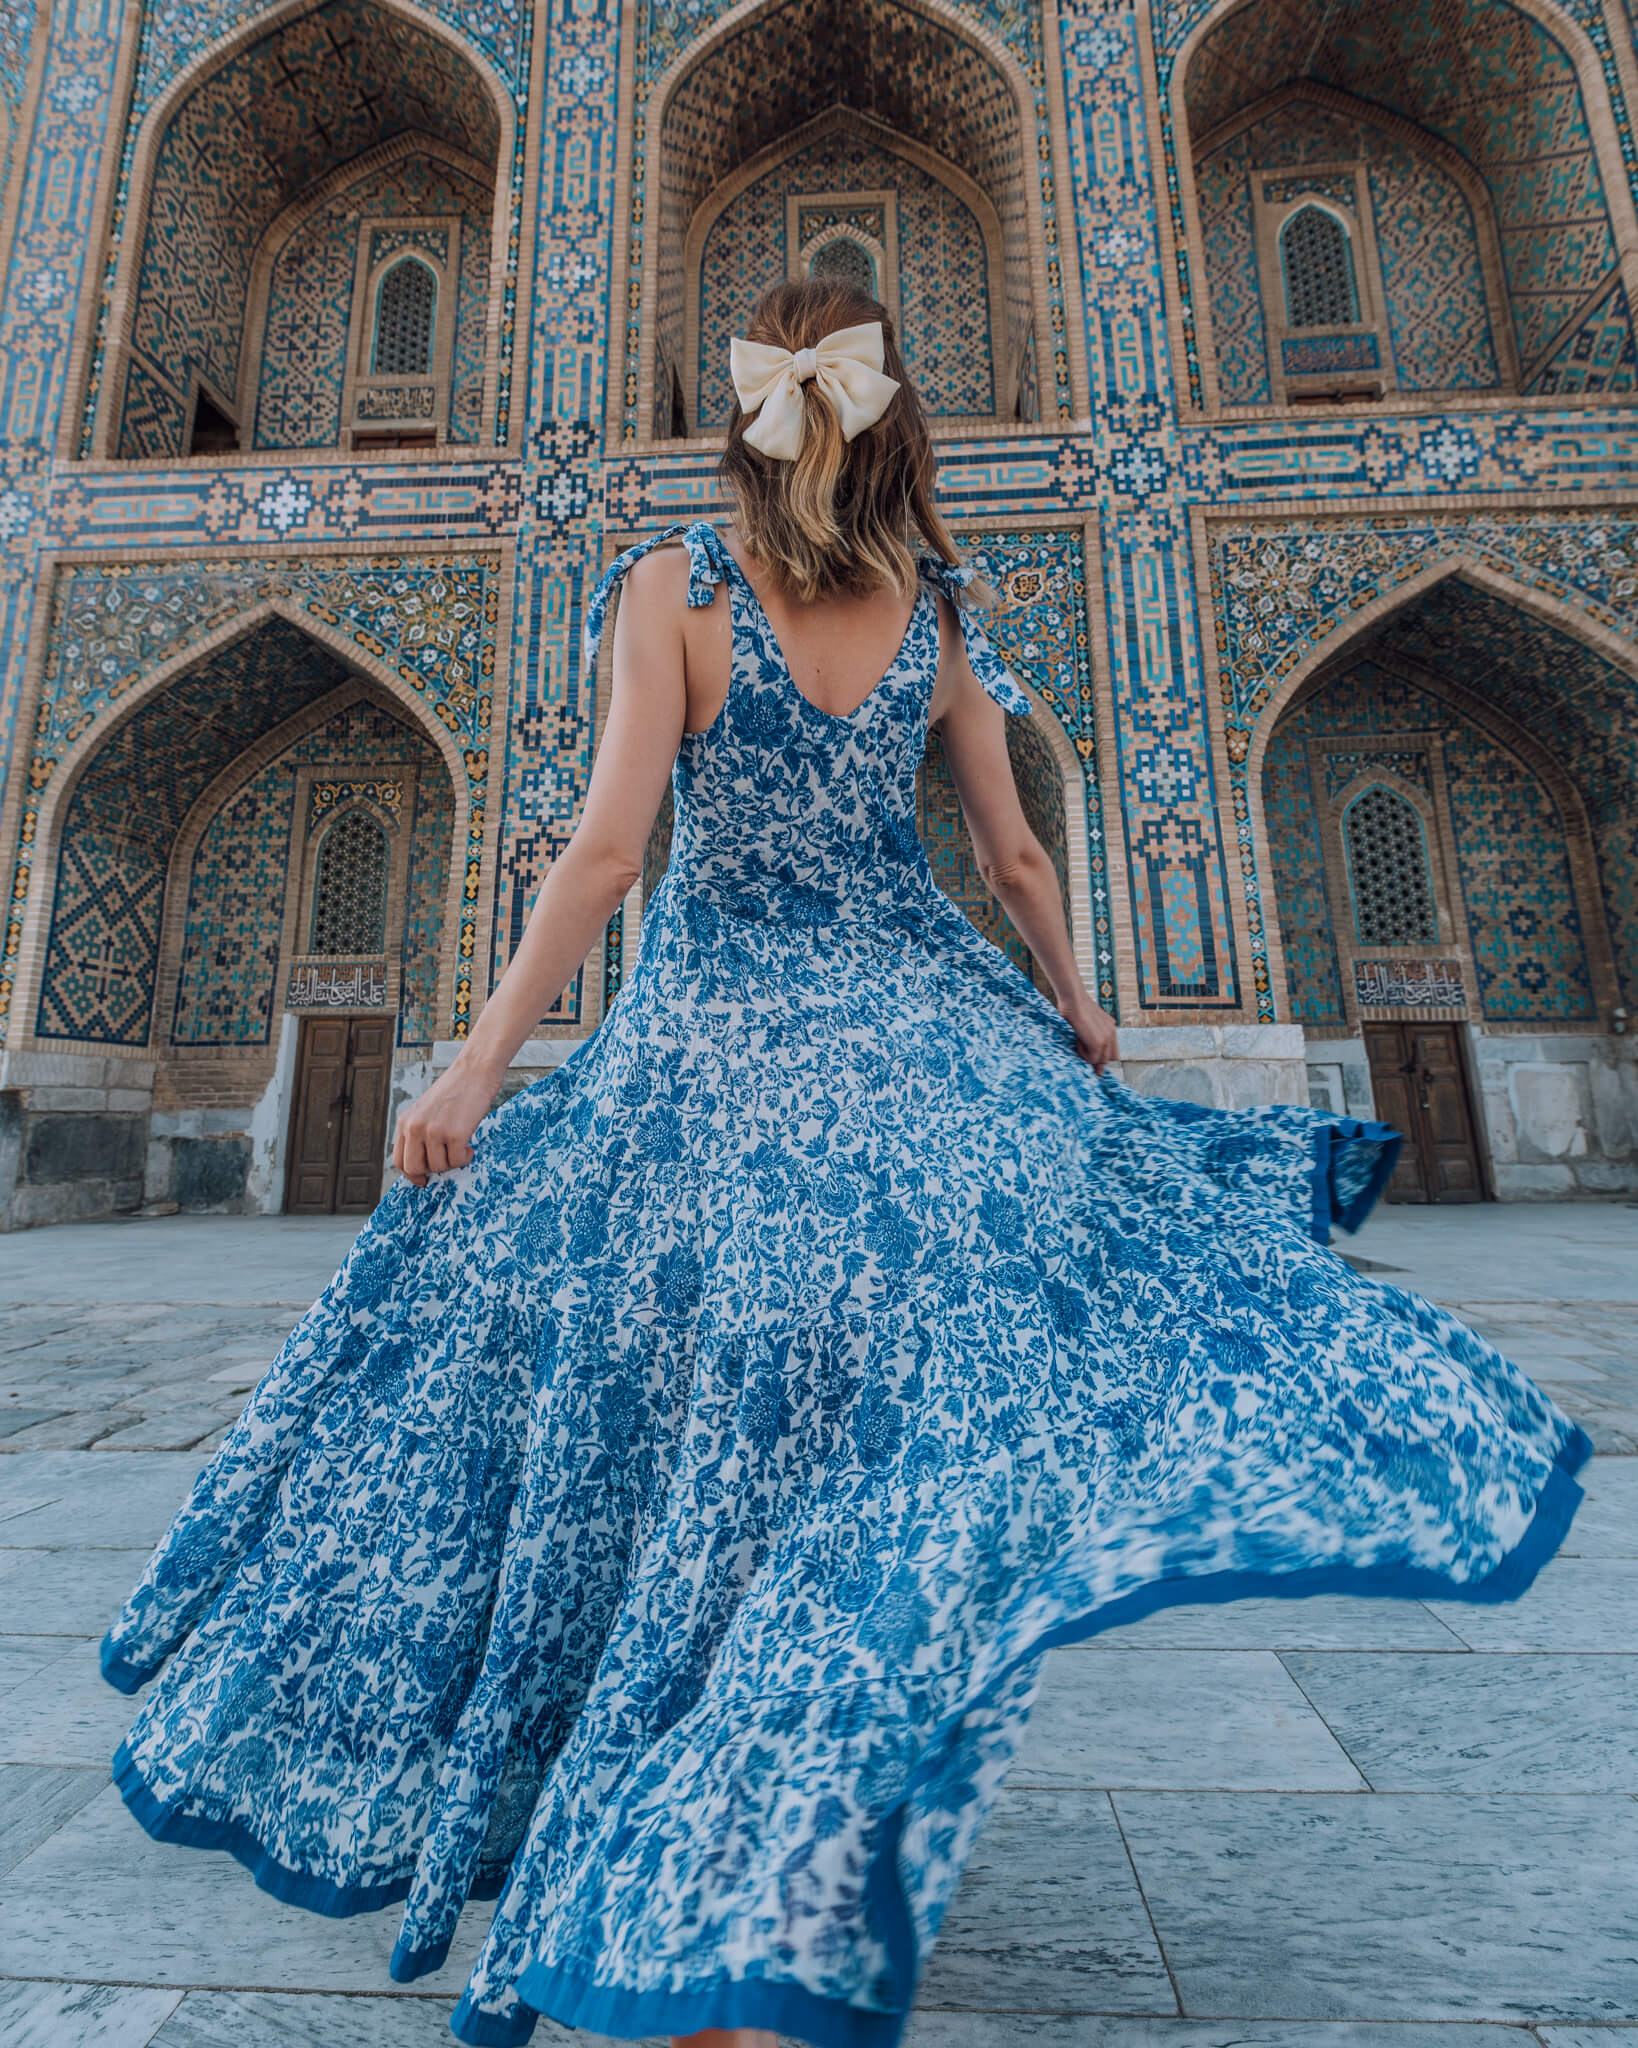 FreePeople KikasDress in Blue.jpg